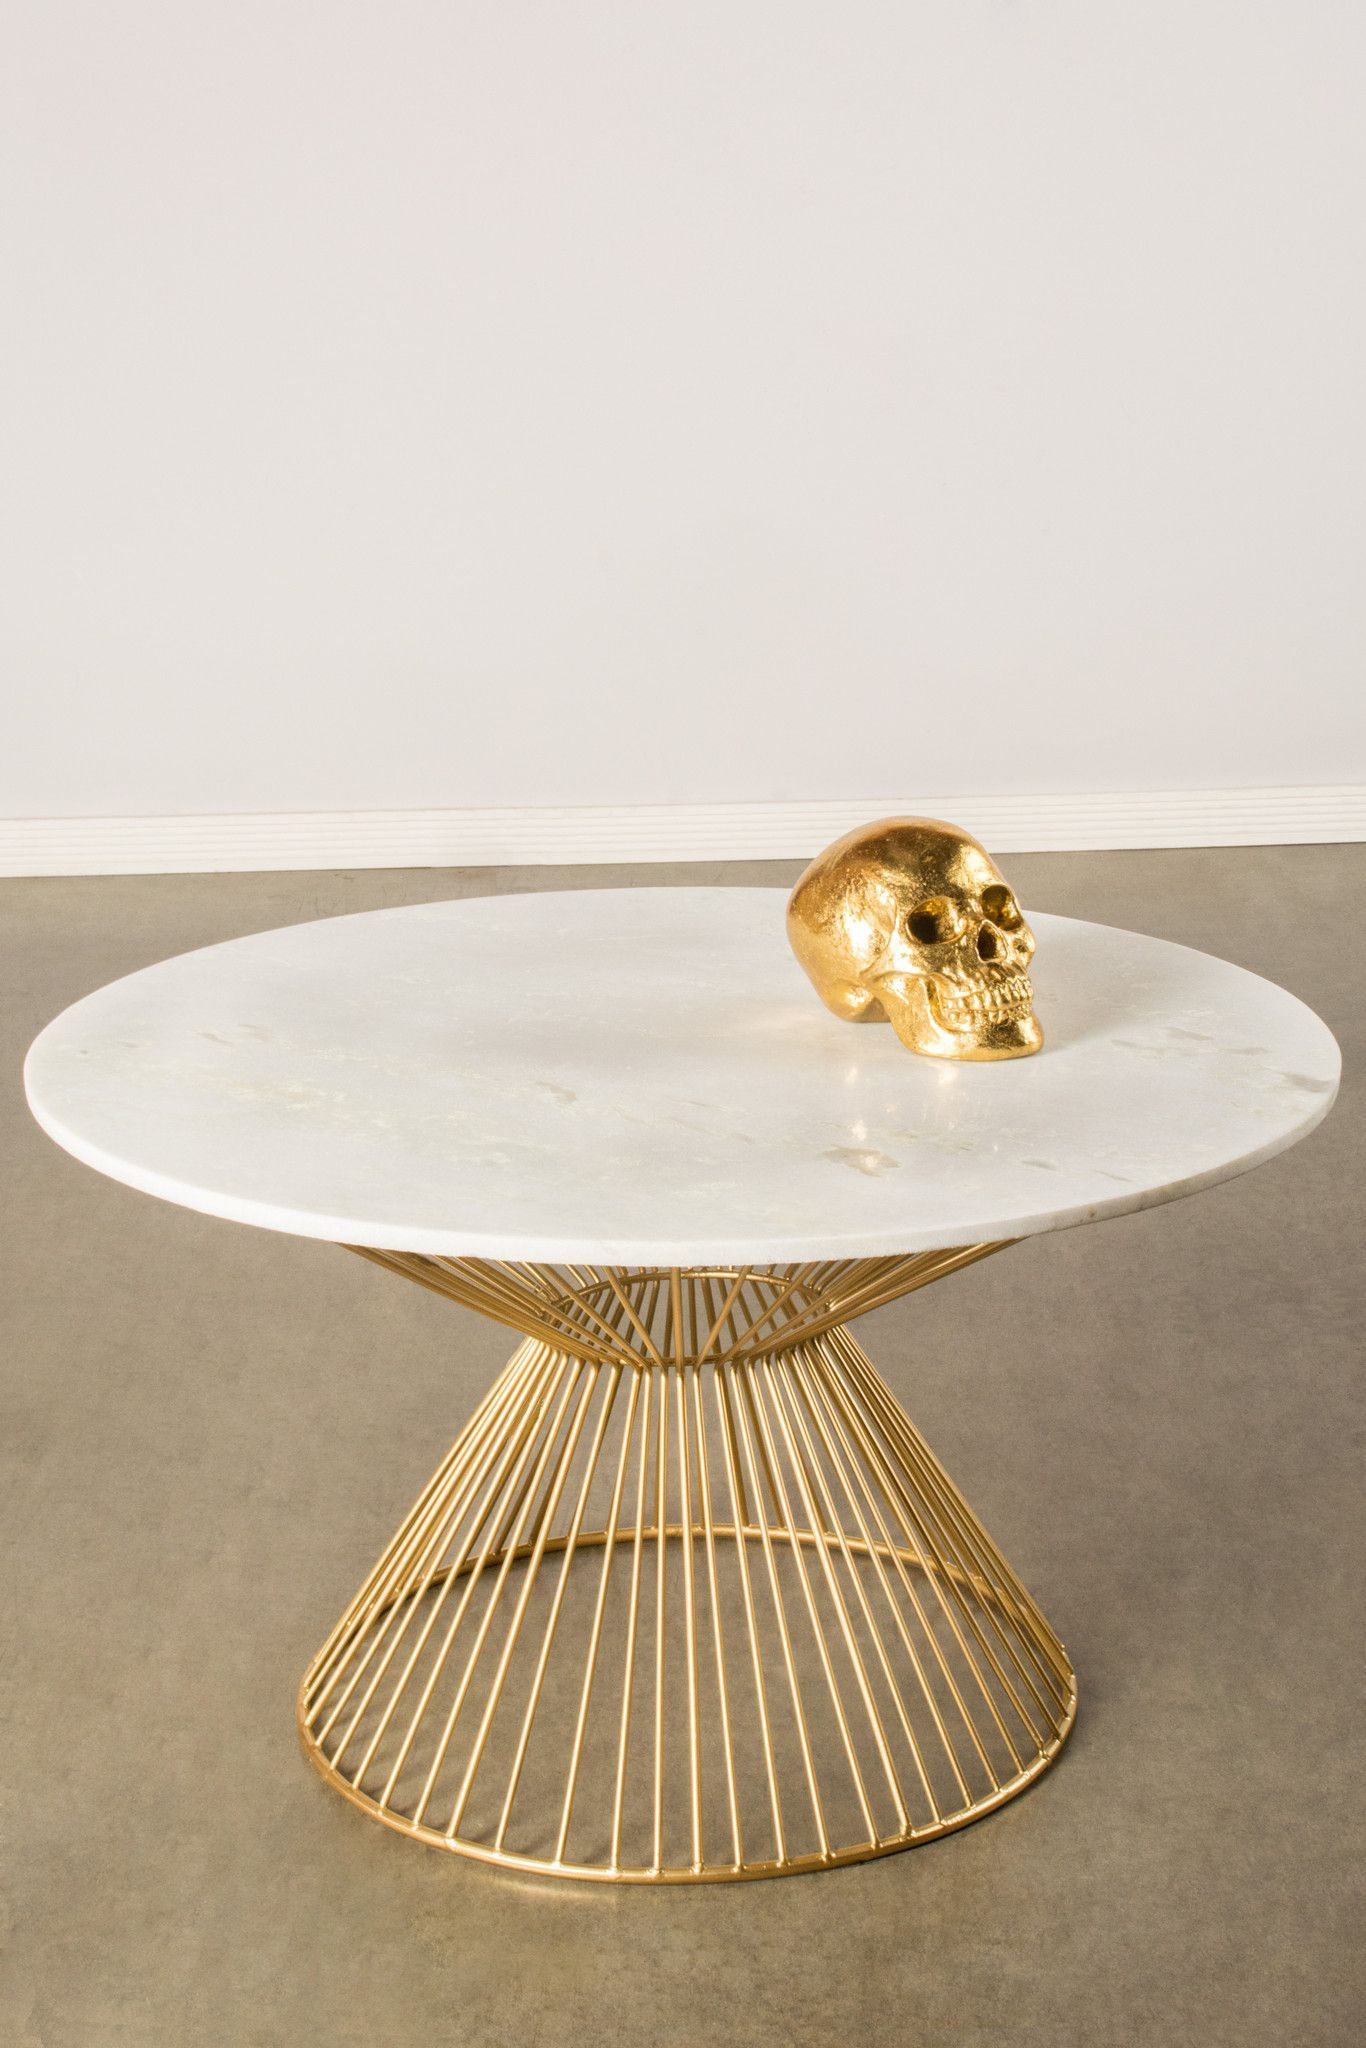 Ae651s Willow Coffee Table Coffee Table Living Room Table Gold Gold Coffee Table [ 2048 x 1366 Pixel ]